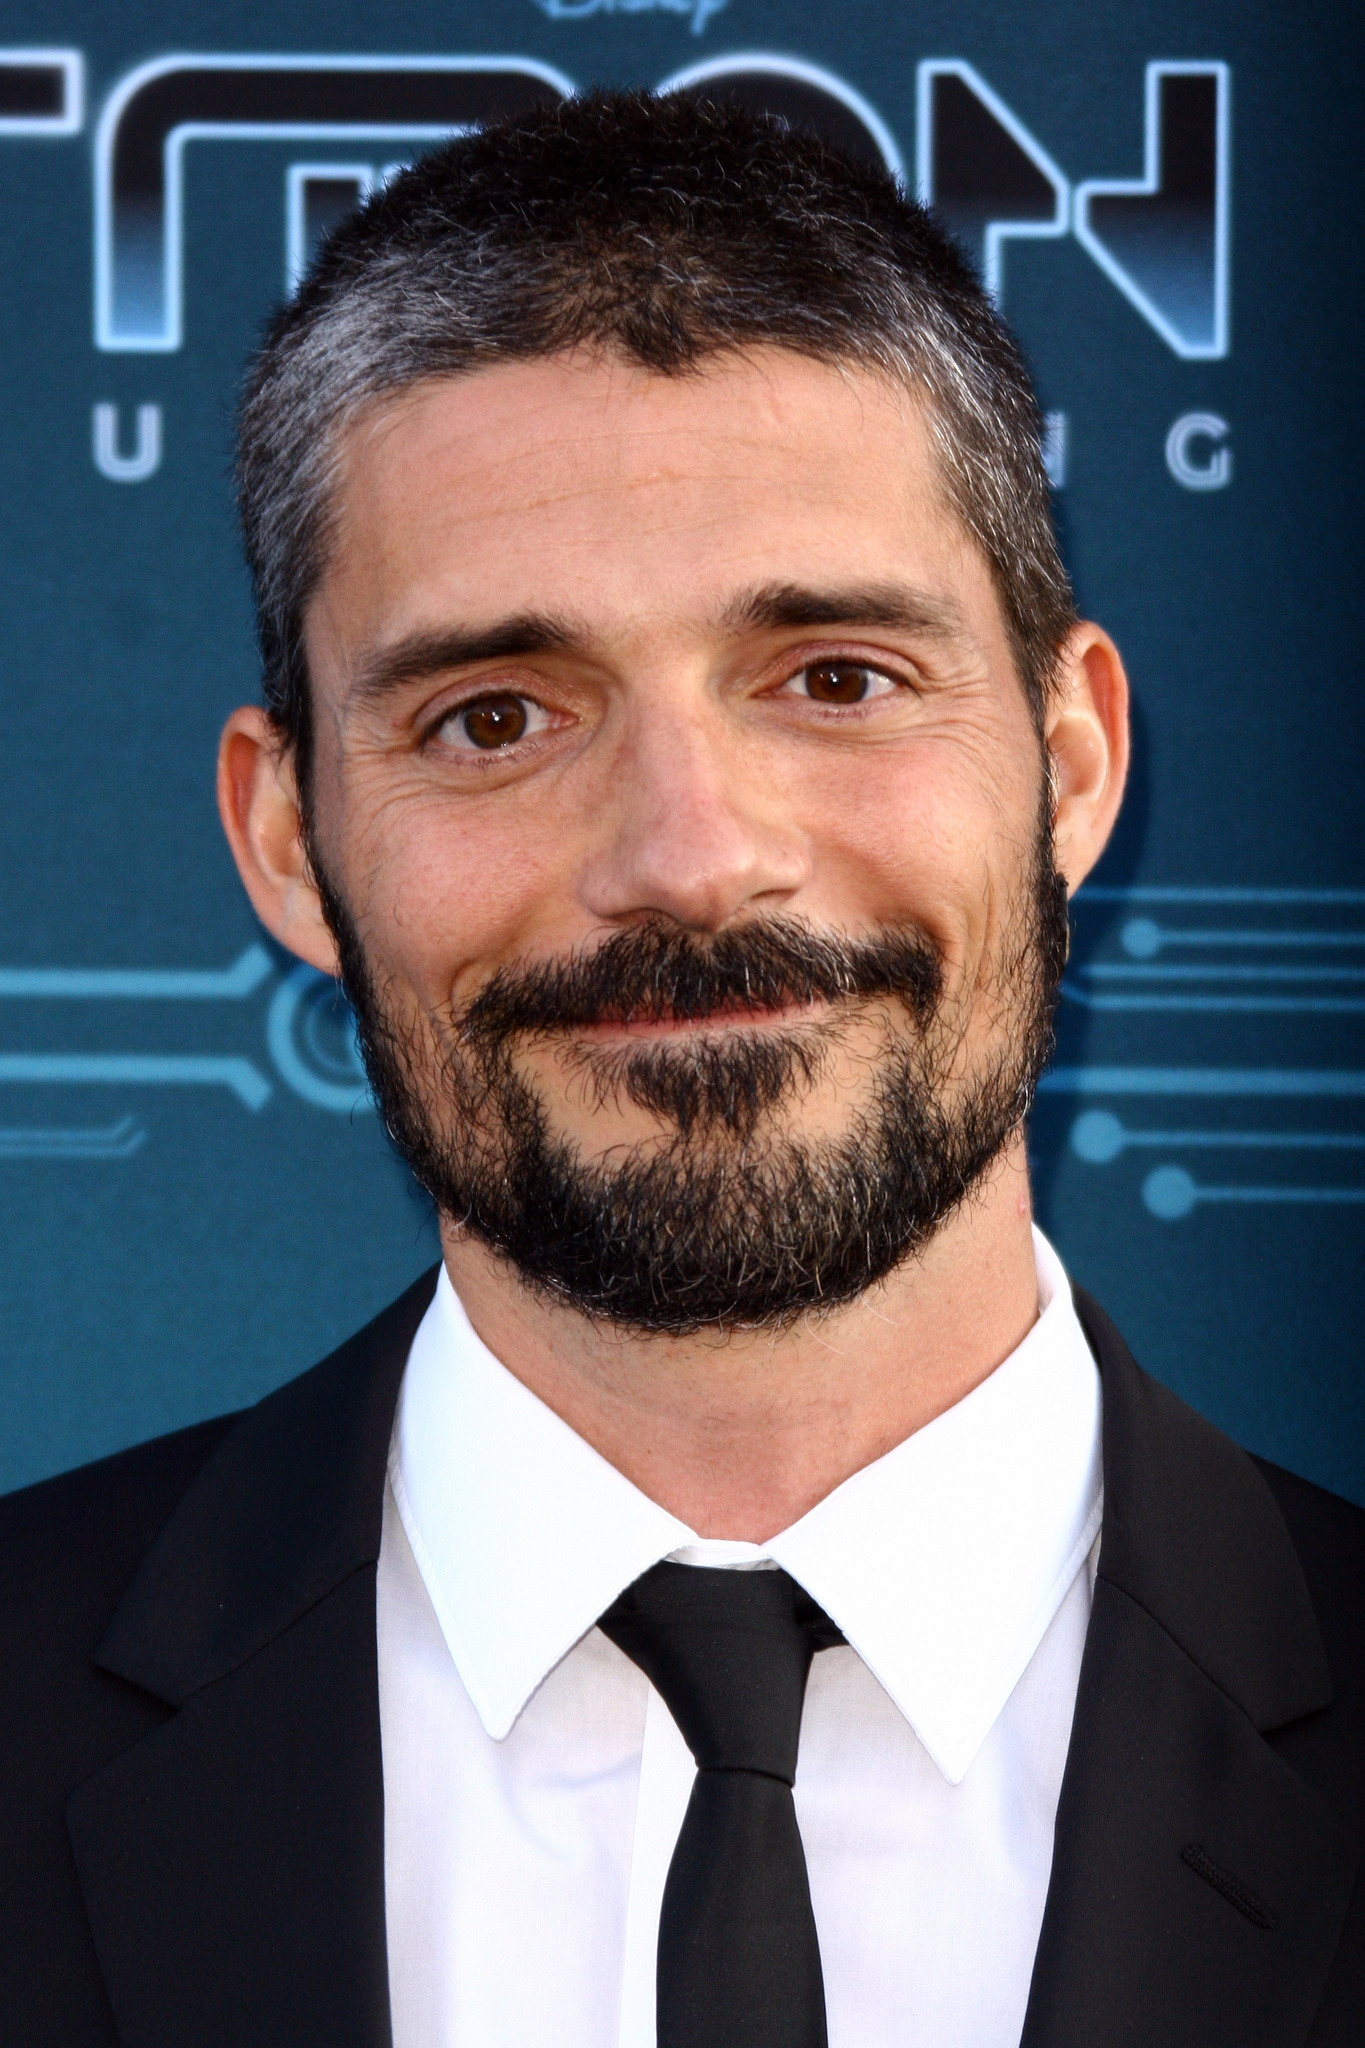 Alberto Mielgo at an event for TRON: Uprising (2012)